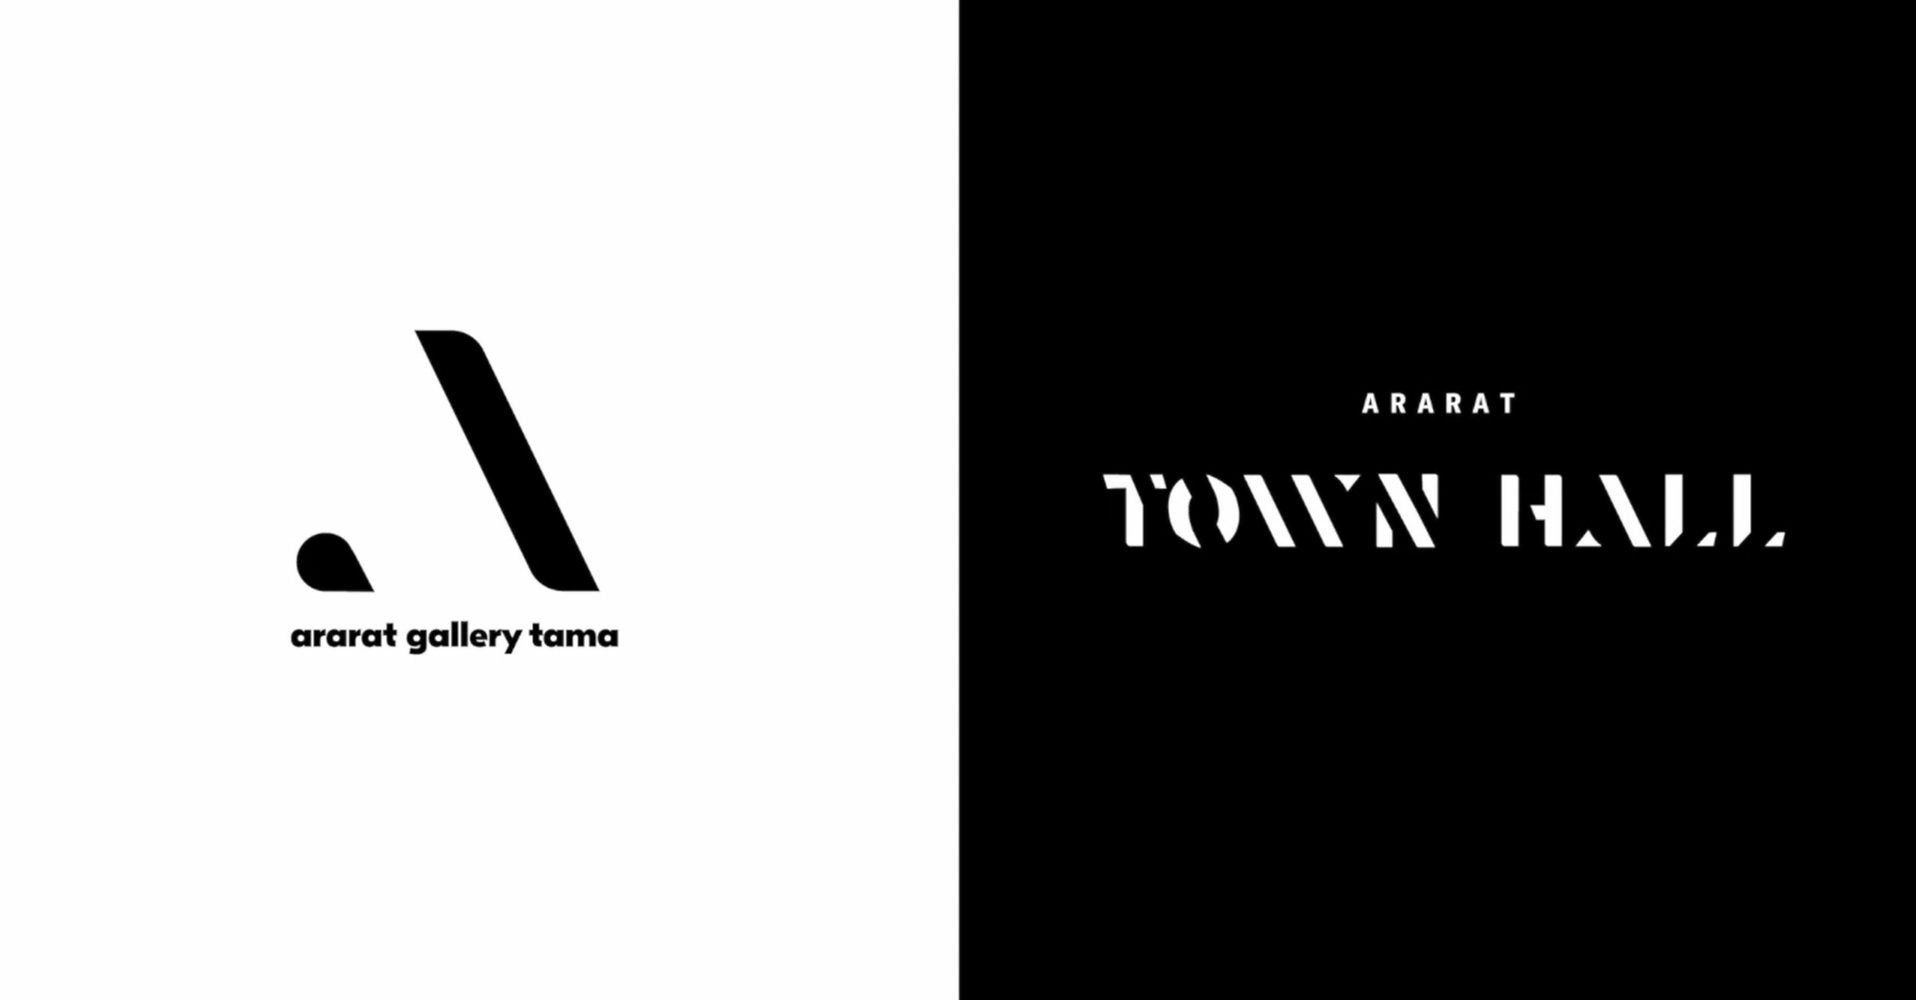 New branding pays homage to Town Hall history